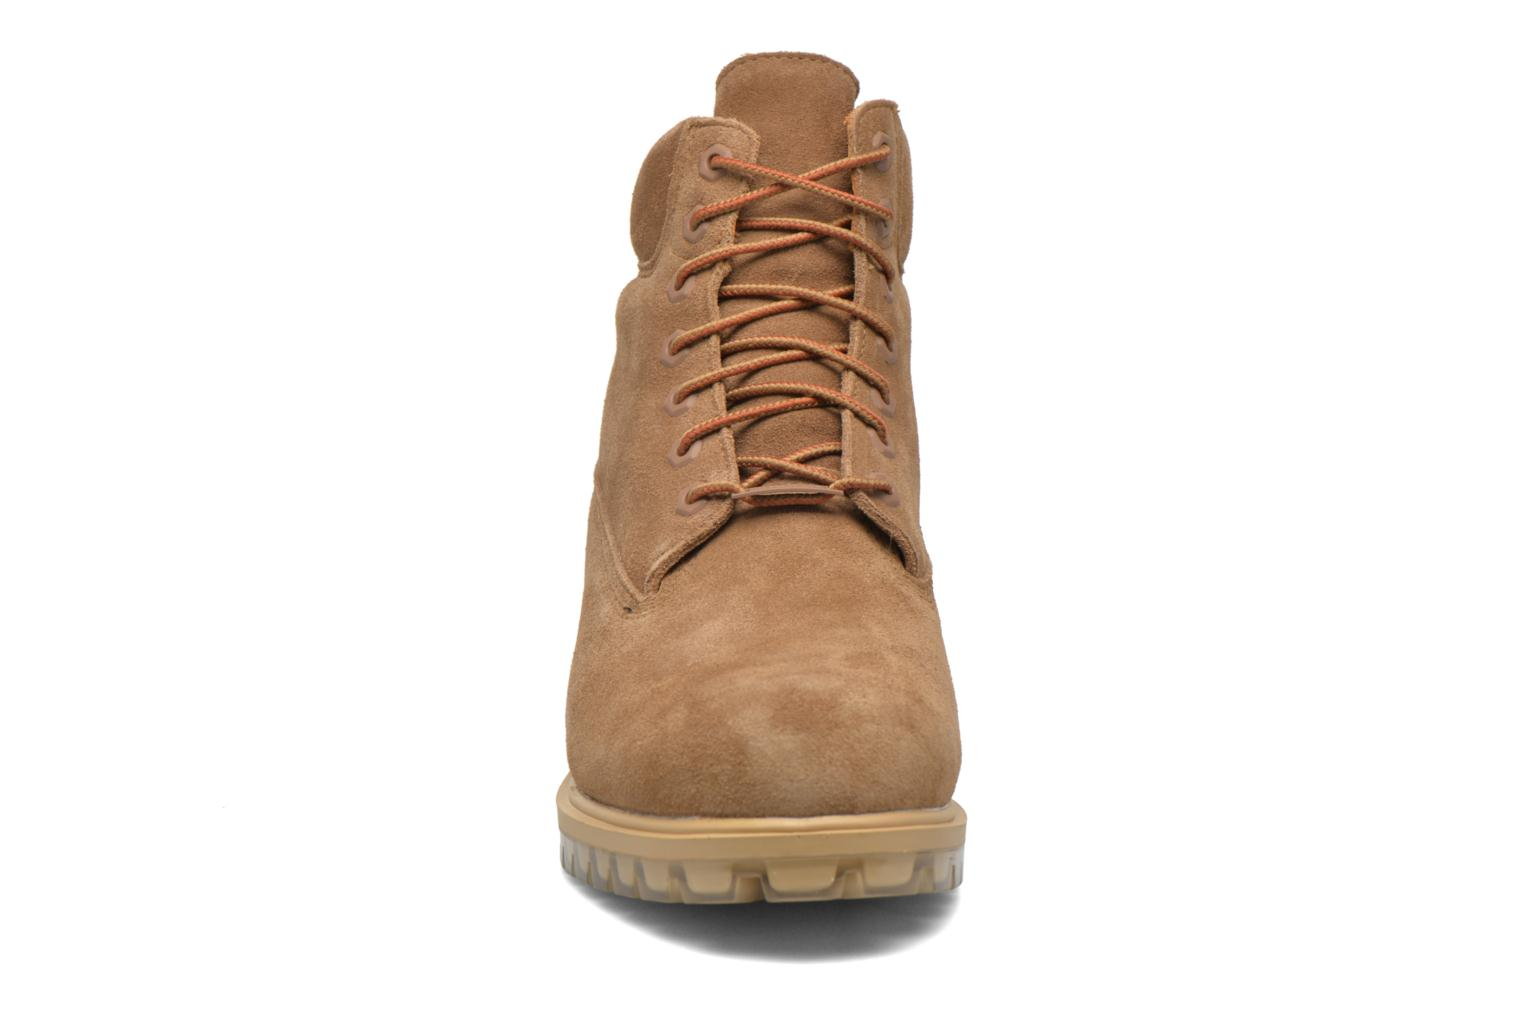 """Bottines et boots Timberland TPU 6"""" WP Suede Beige vue portées chaussures"""